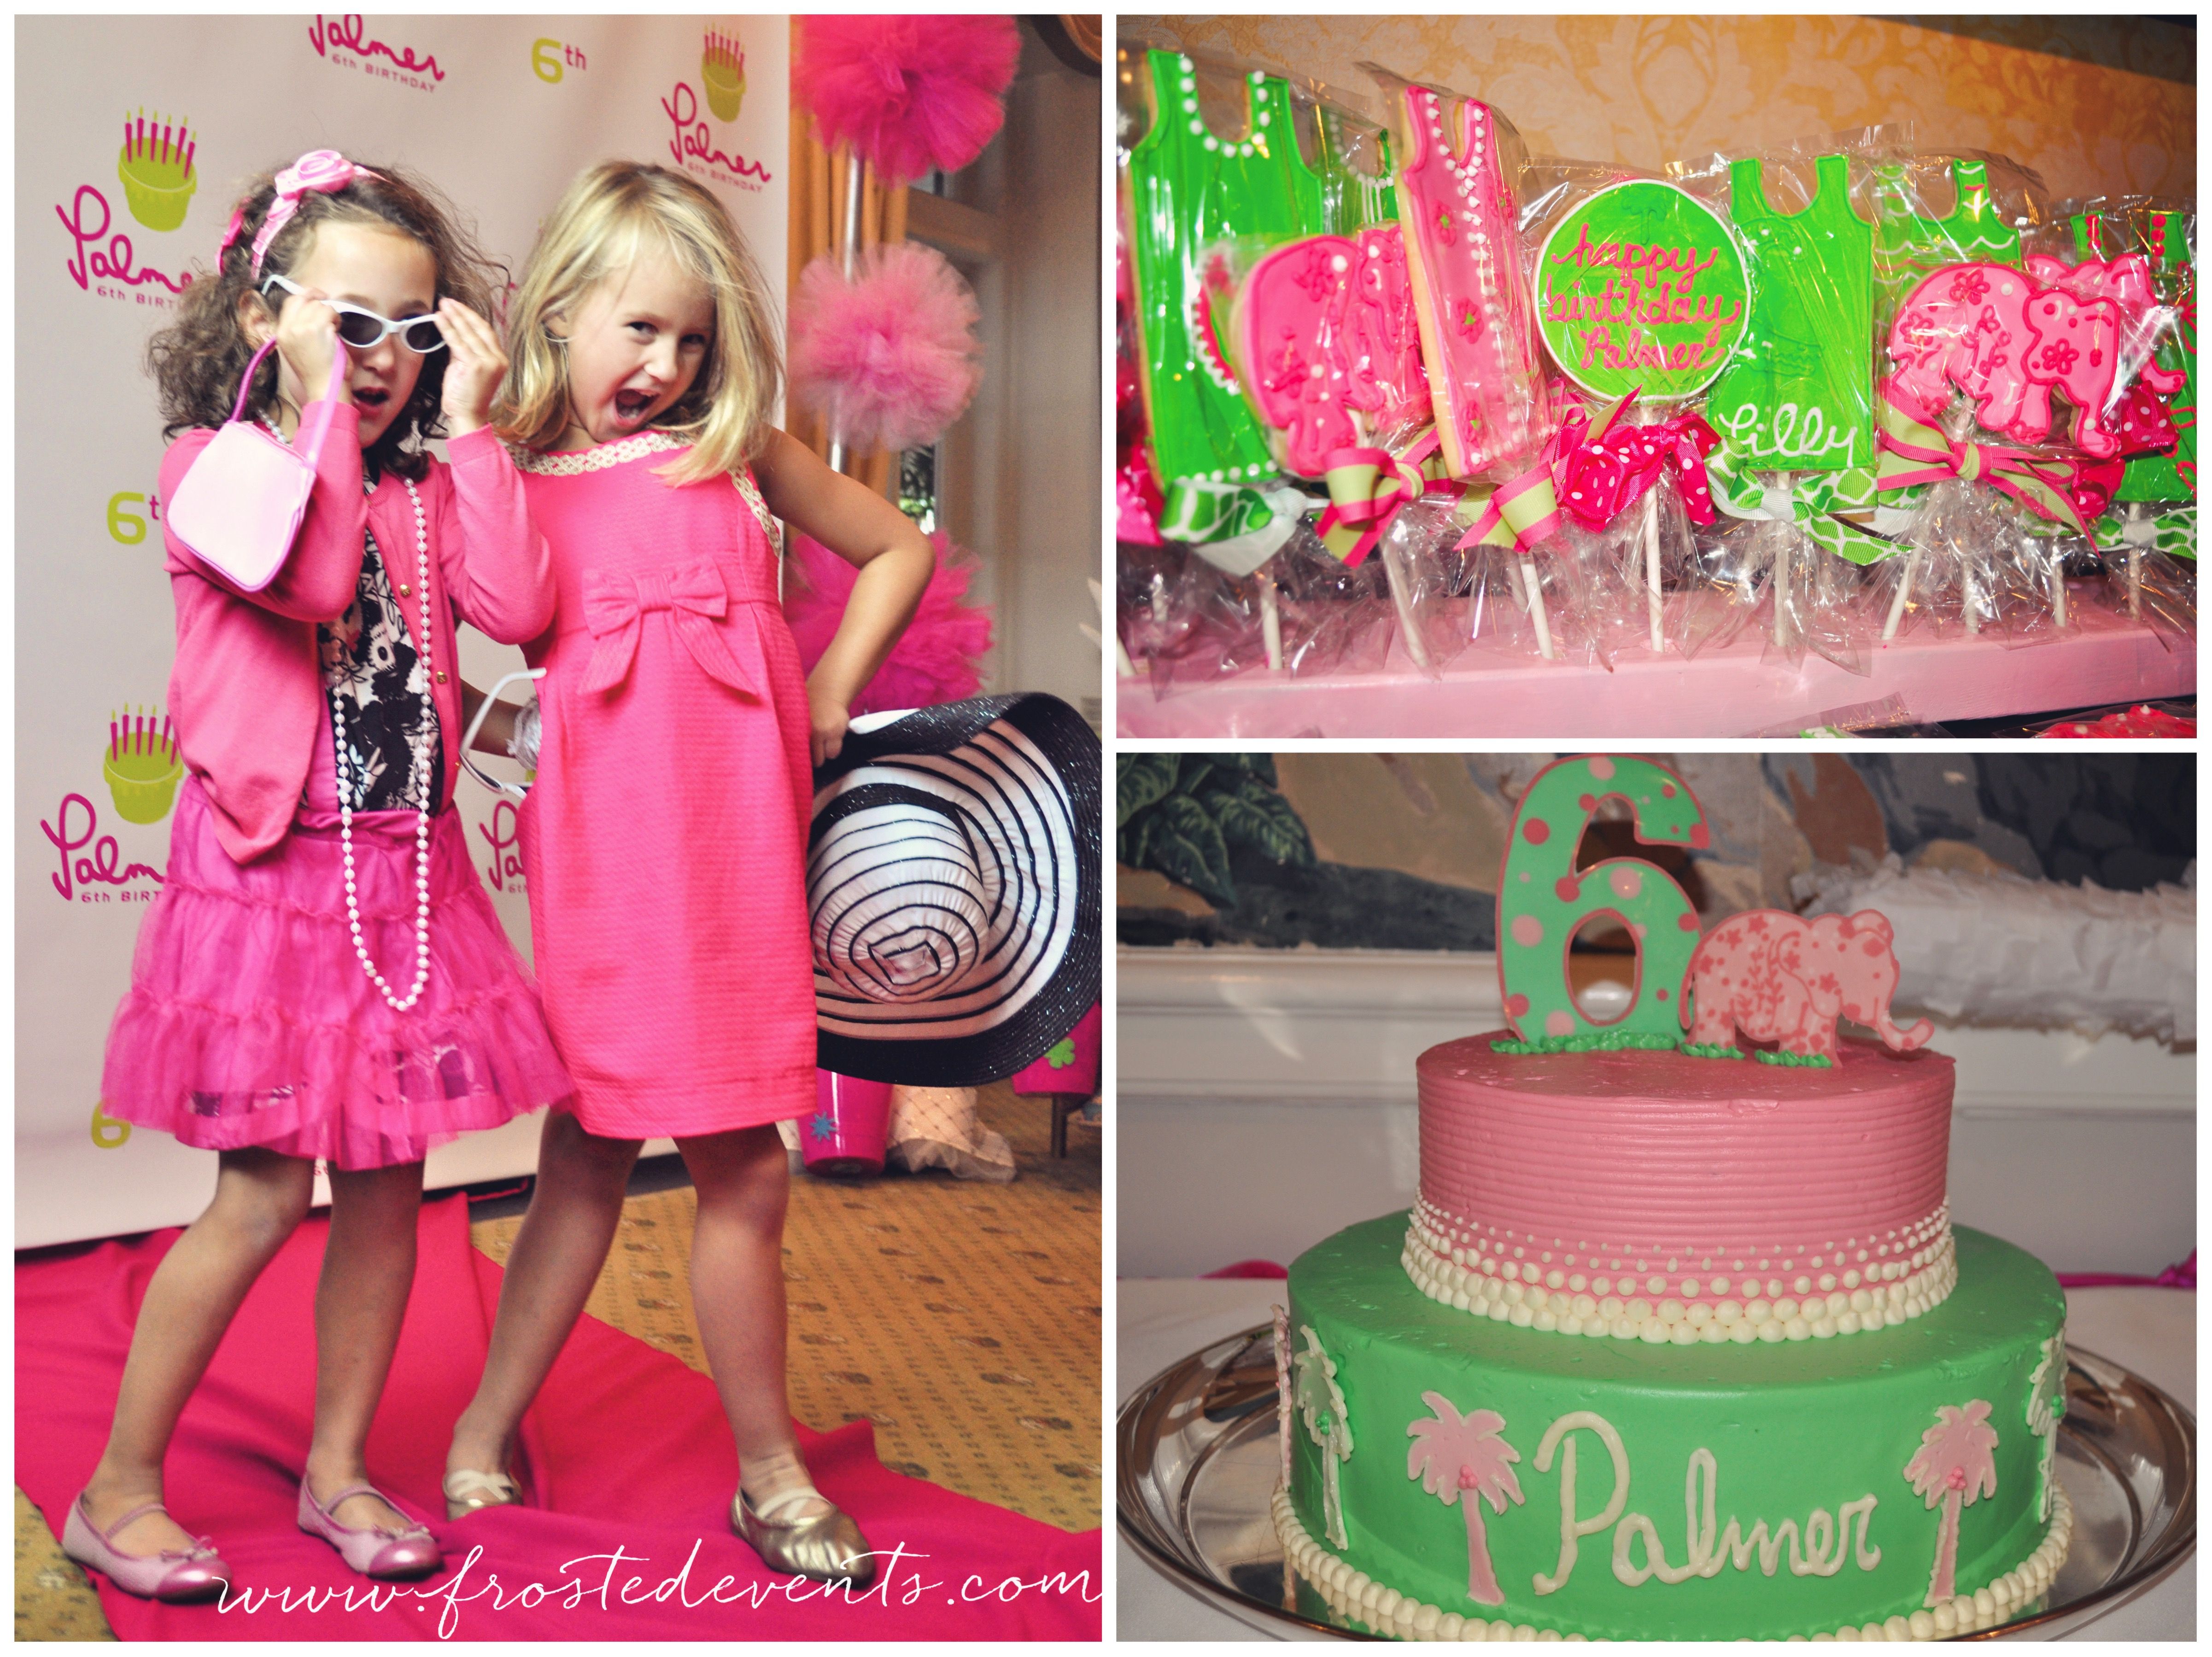 Lilly Pulitzer Party Theme by Frosted Events www.frostedevents.com